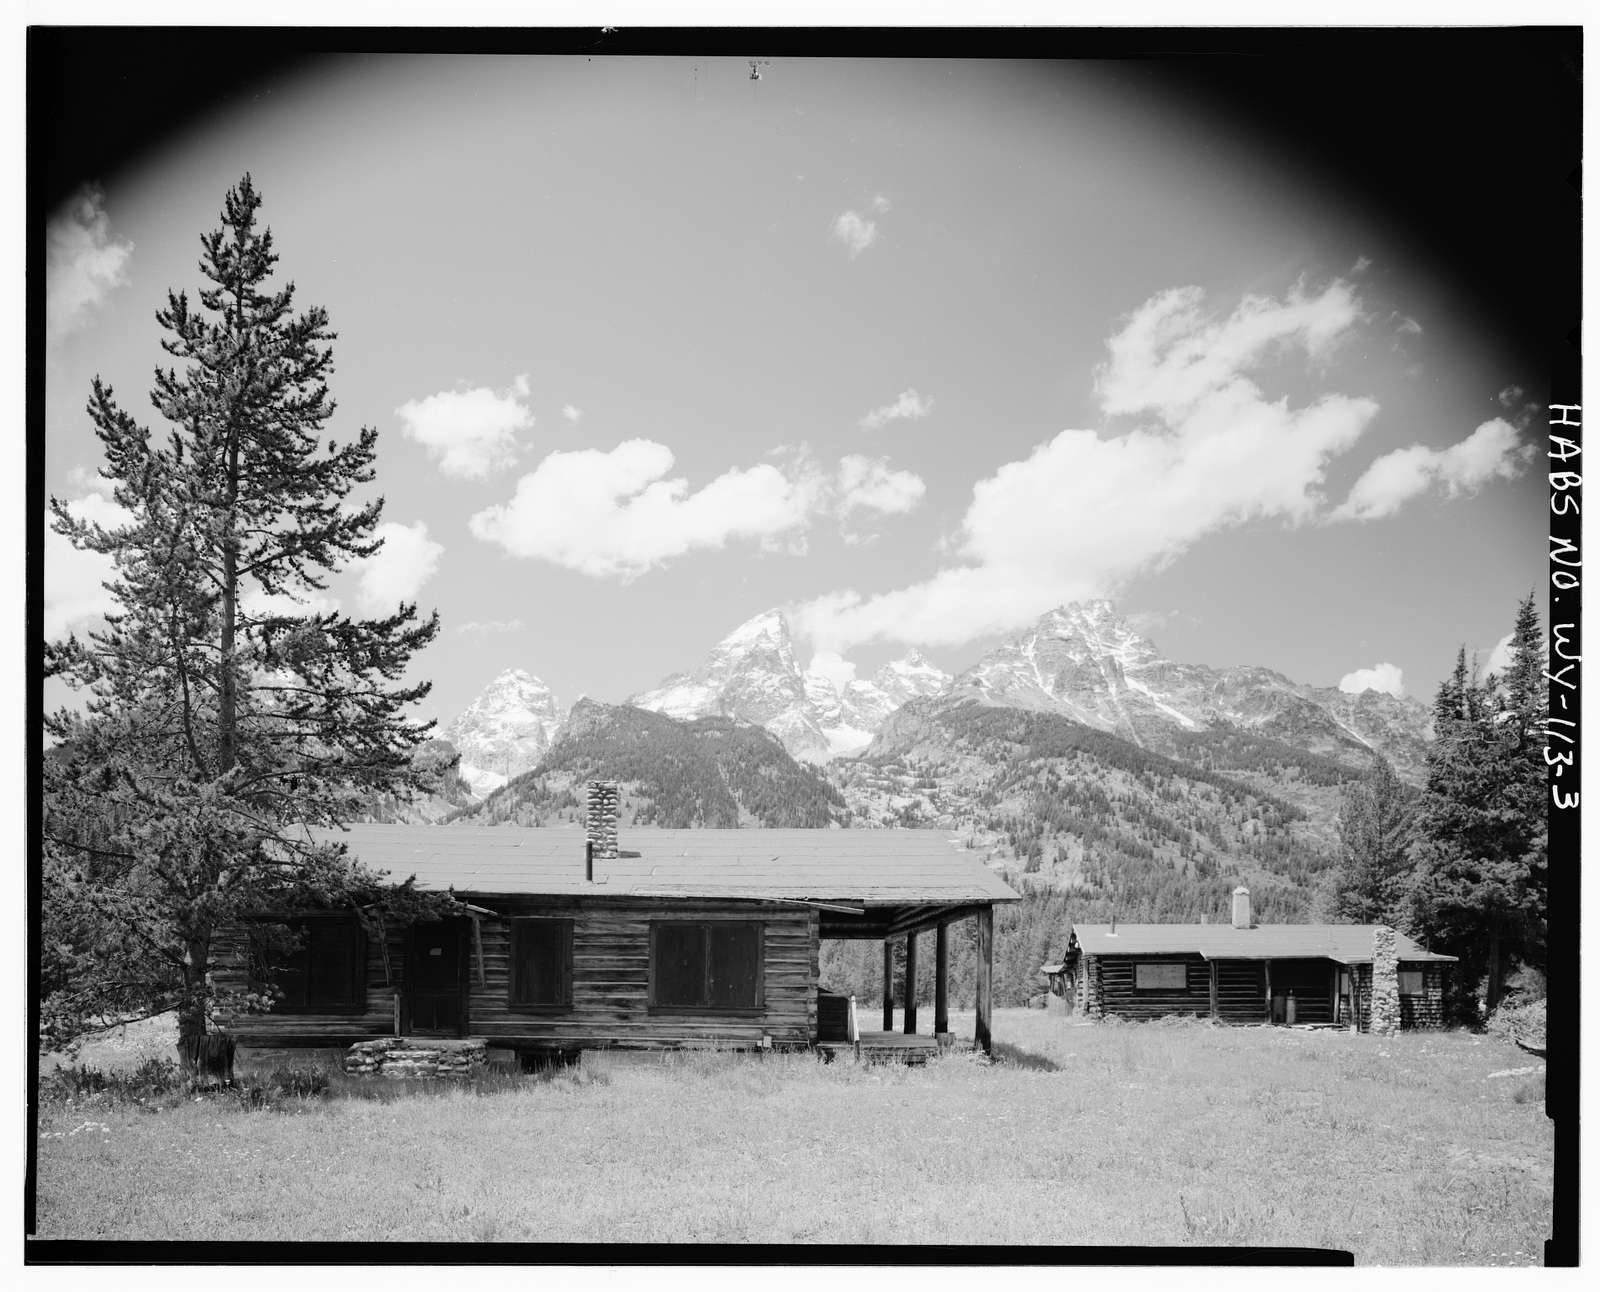 Geraldine Lucas Homestead, West bank Cottonwood Creek, 2.5 miles downstream from Jenny Lake, Moose, Teton County, WY